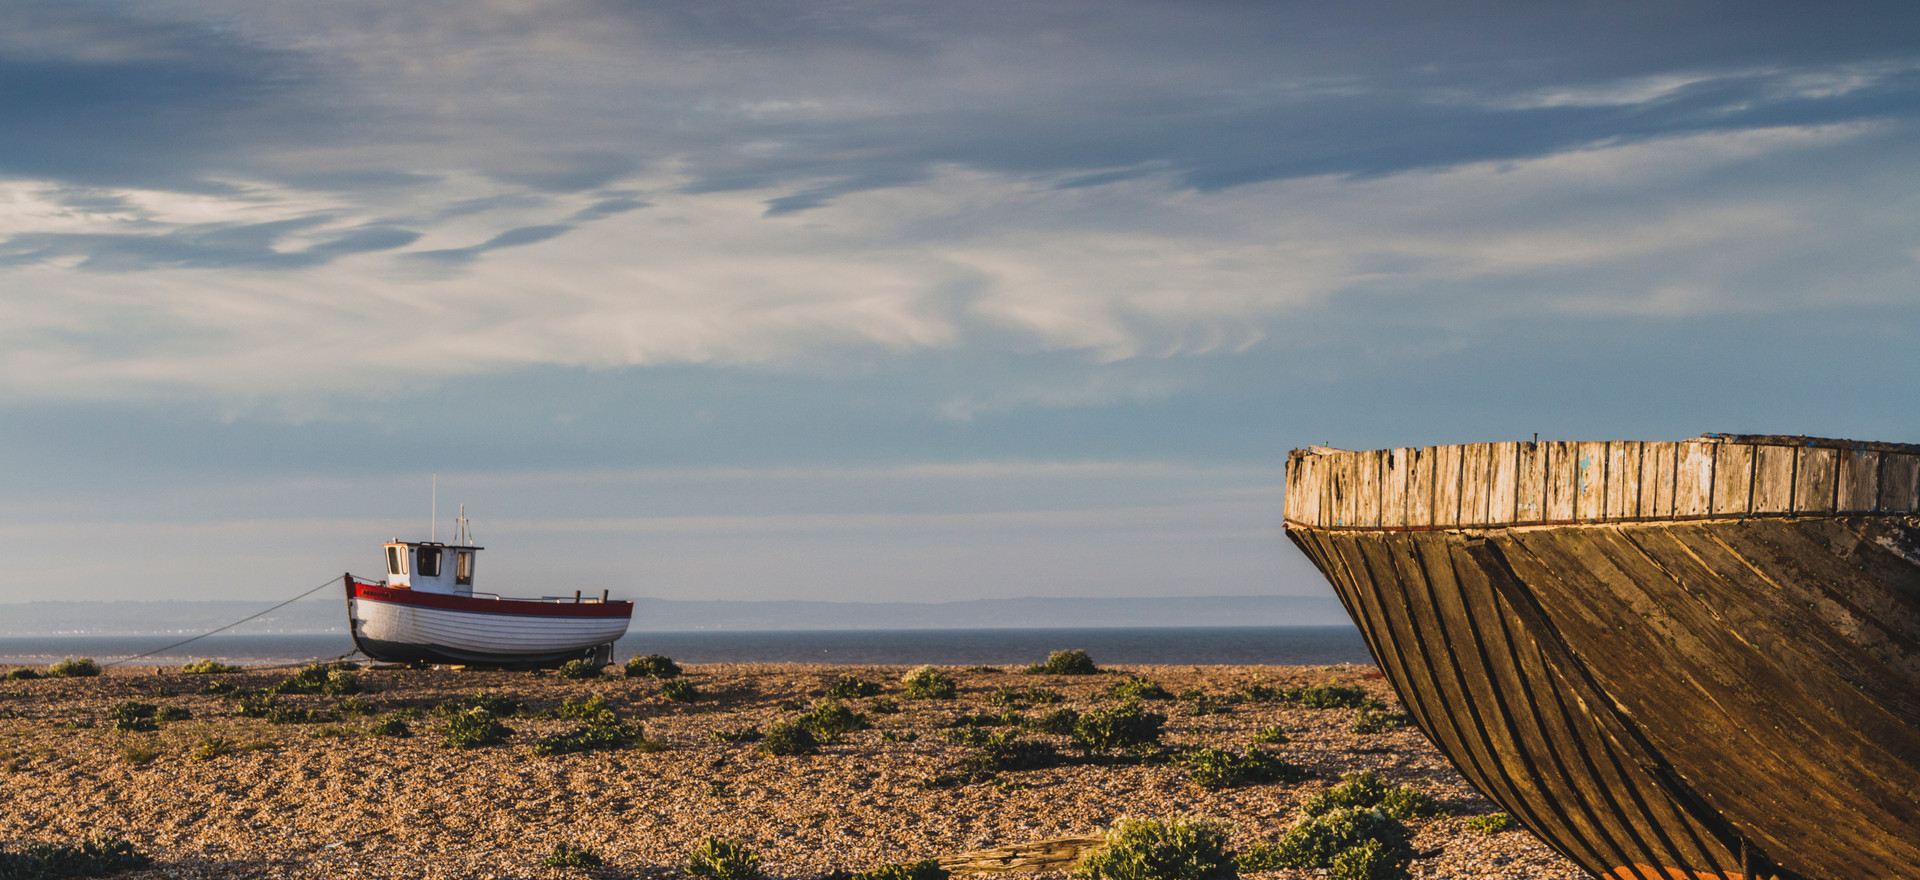 Dungeness Boats - Kent - Landscape Photography - Jamie Denny Photography